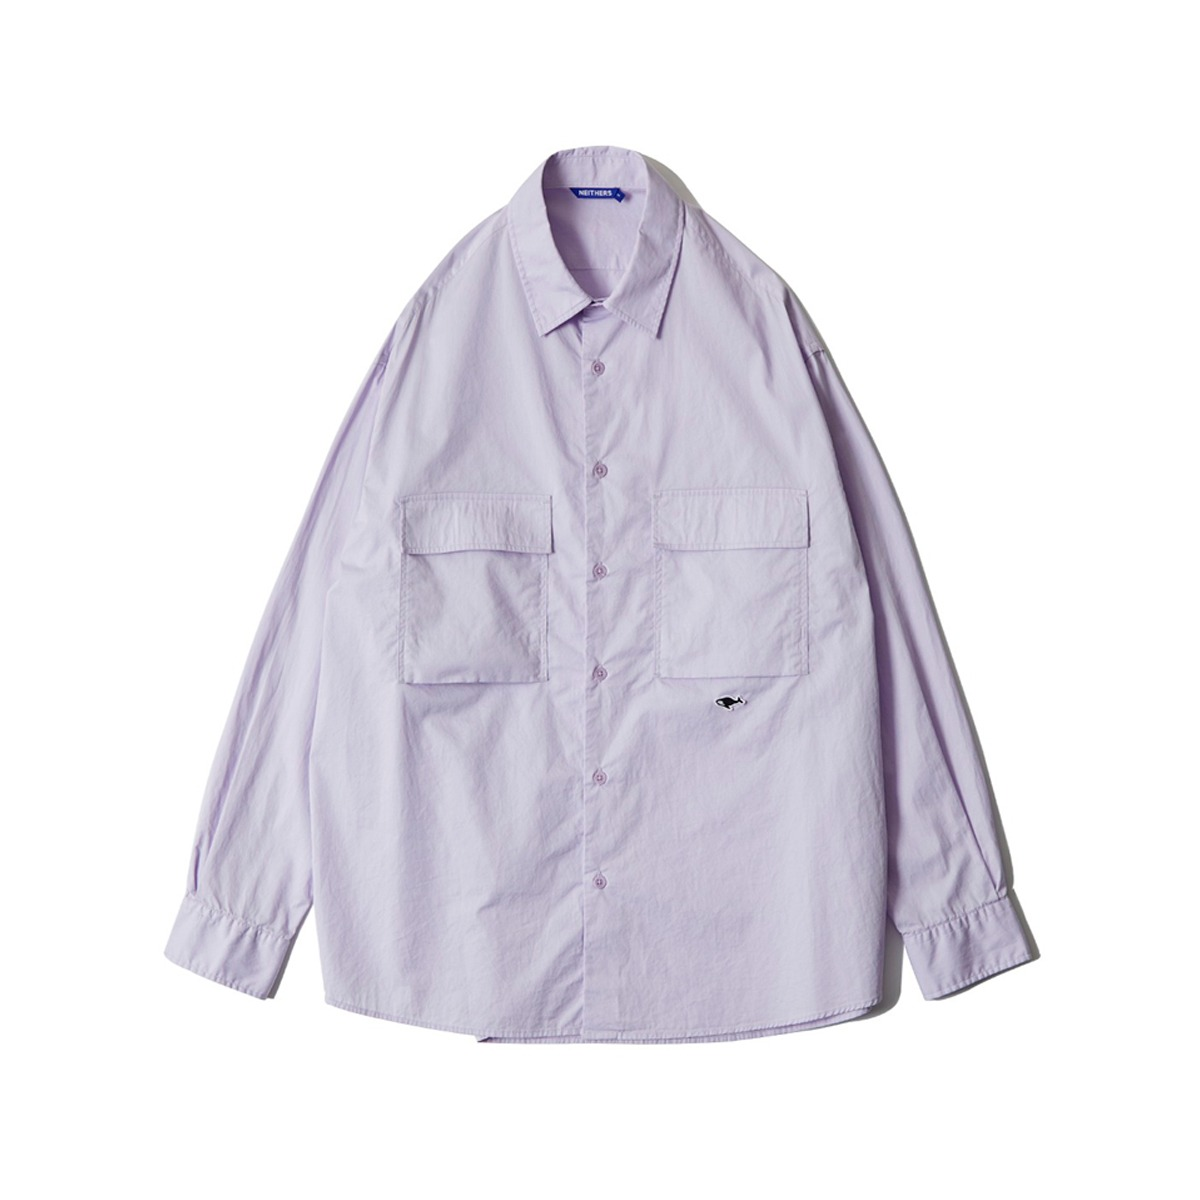 [NEITHERS] D5009-3 S 2-POCKET WIDE SHIRT 'LAVENDER'